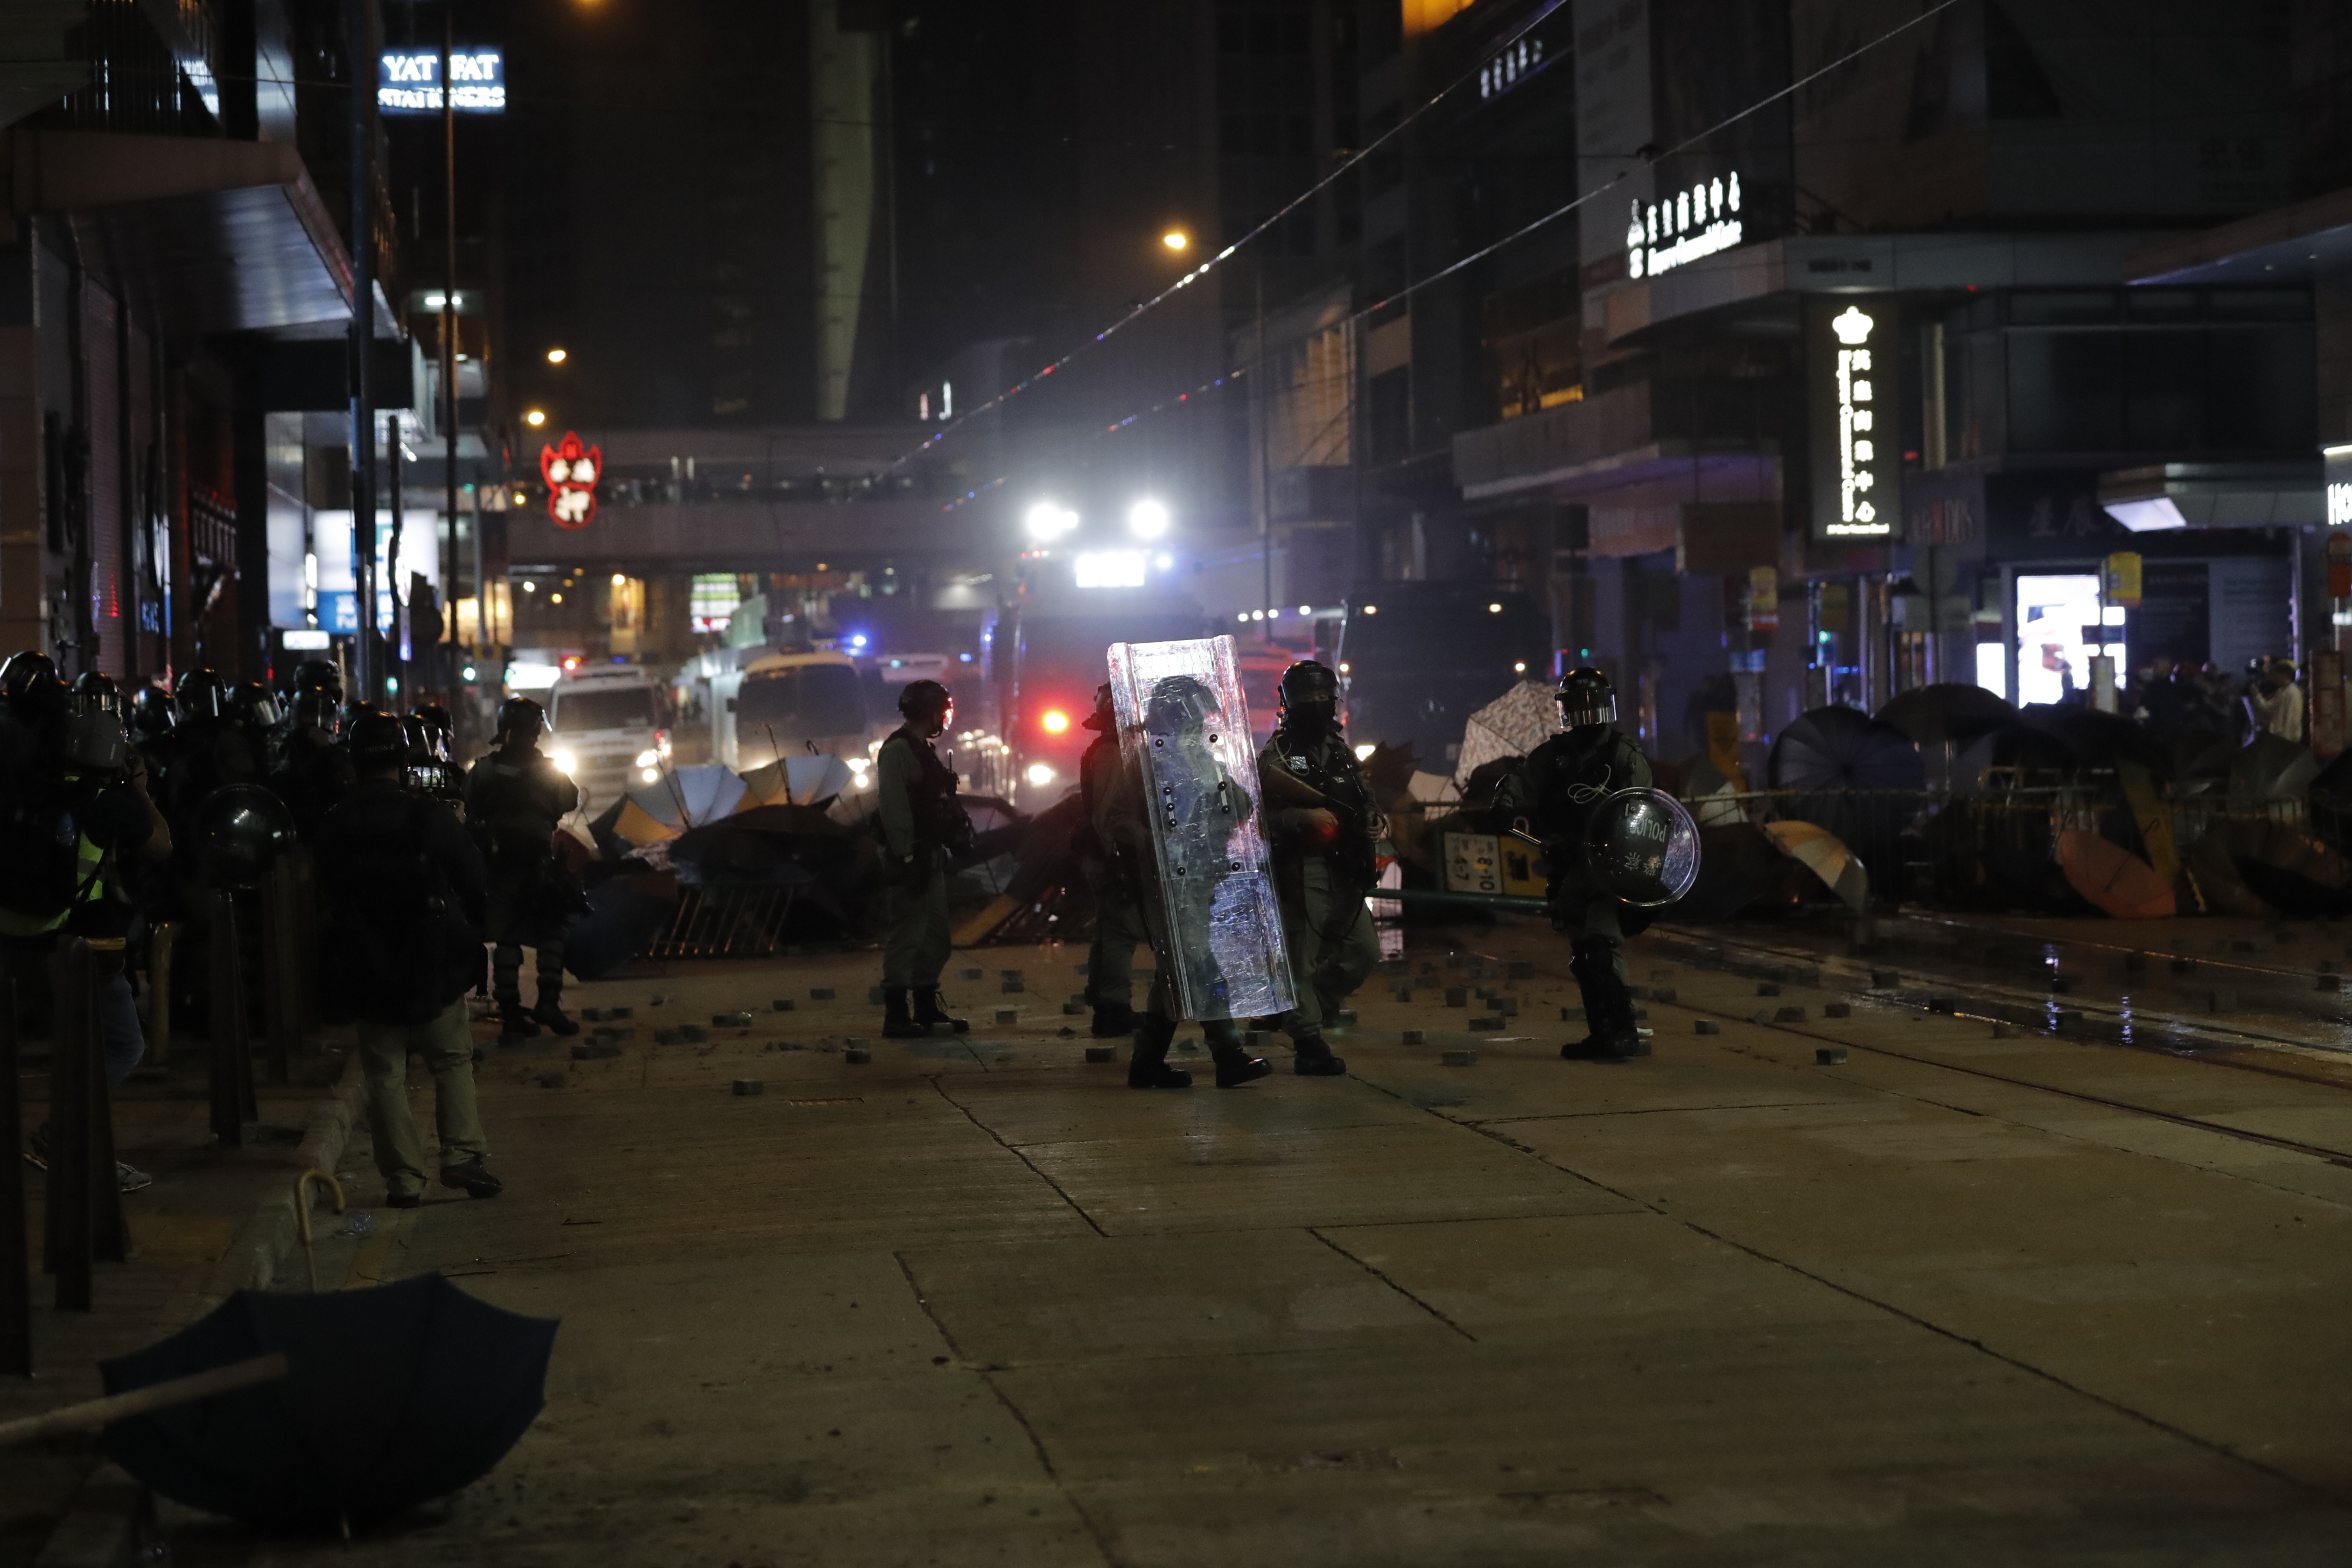 Police, protesters clash in New Years rally in Hong Kong